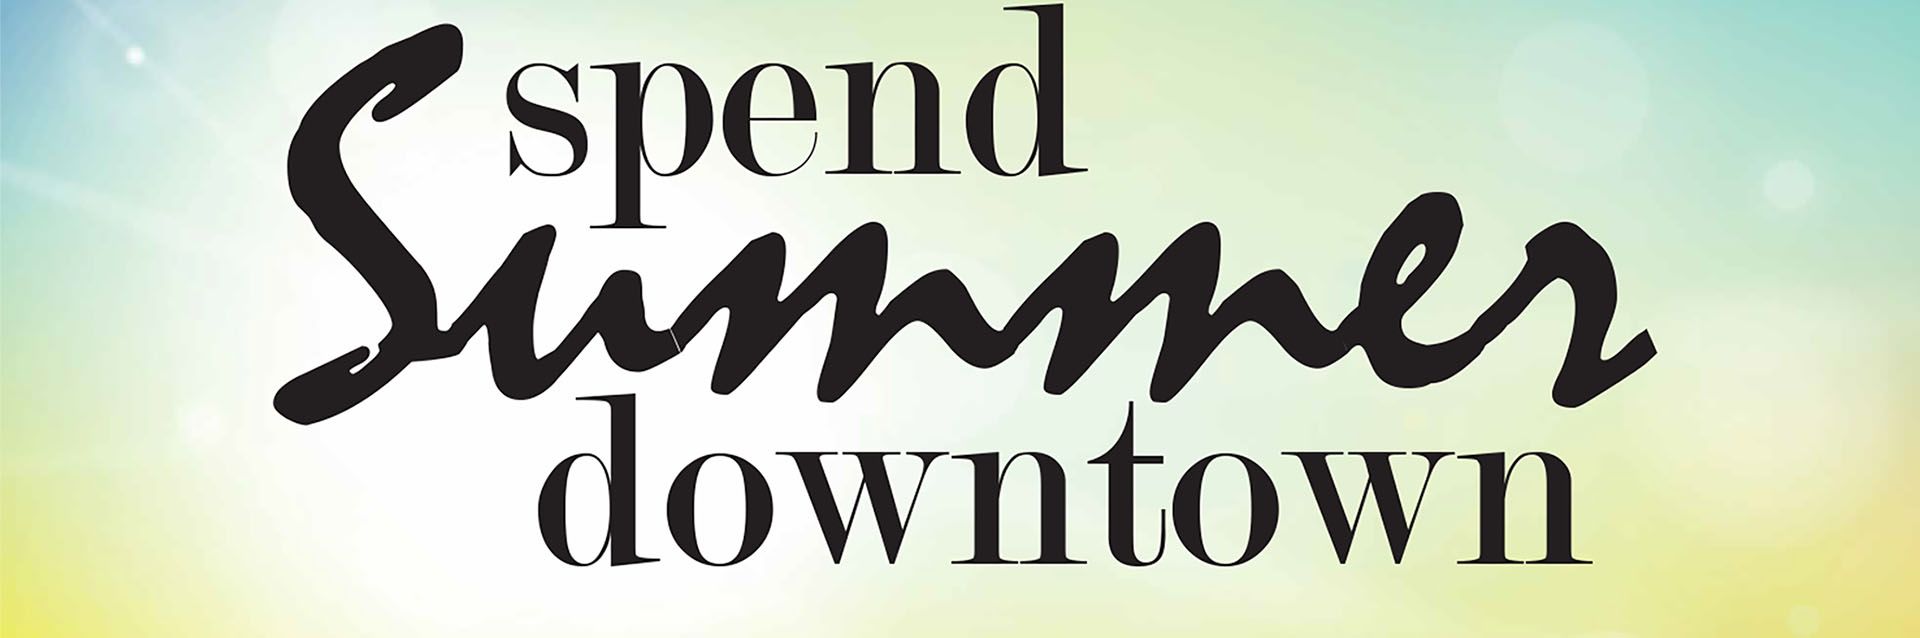 Spend Summer Downtown